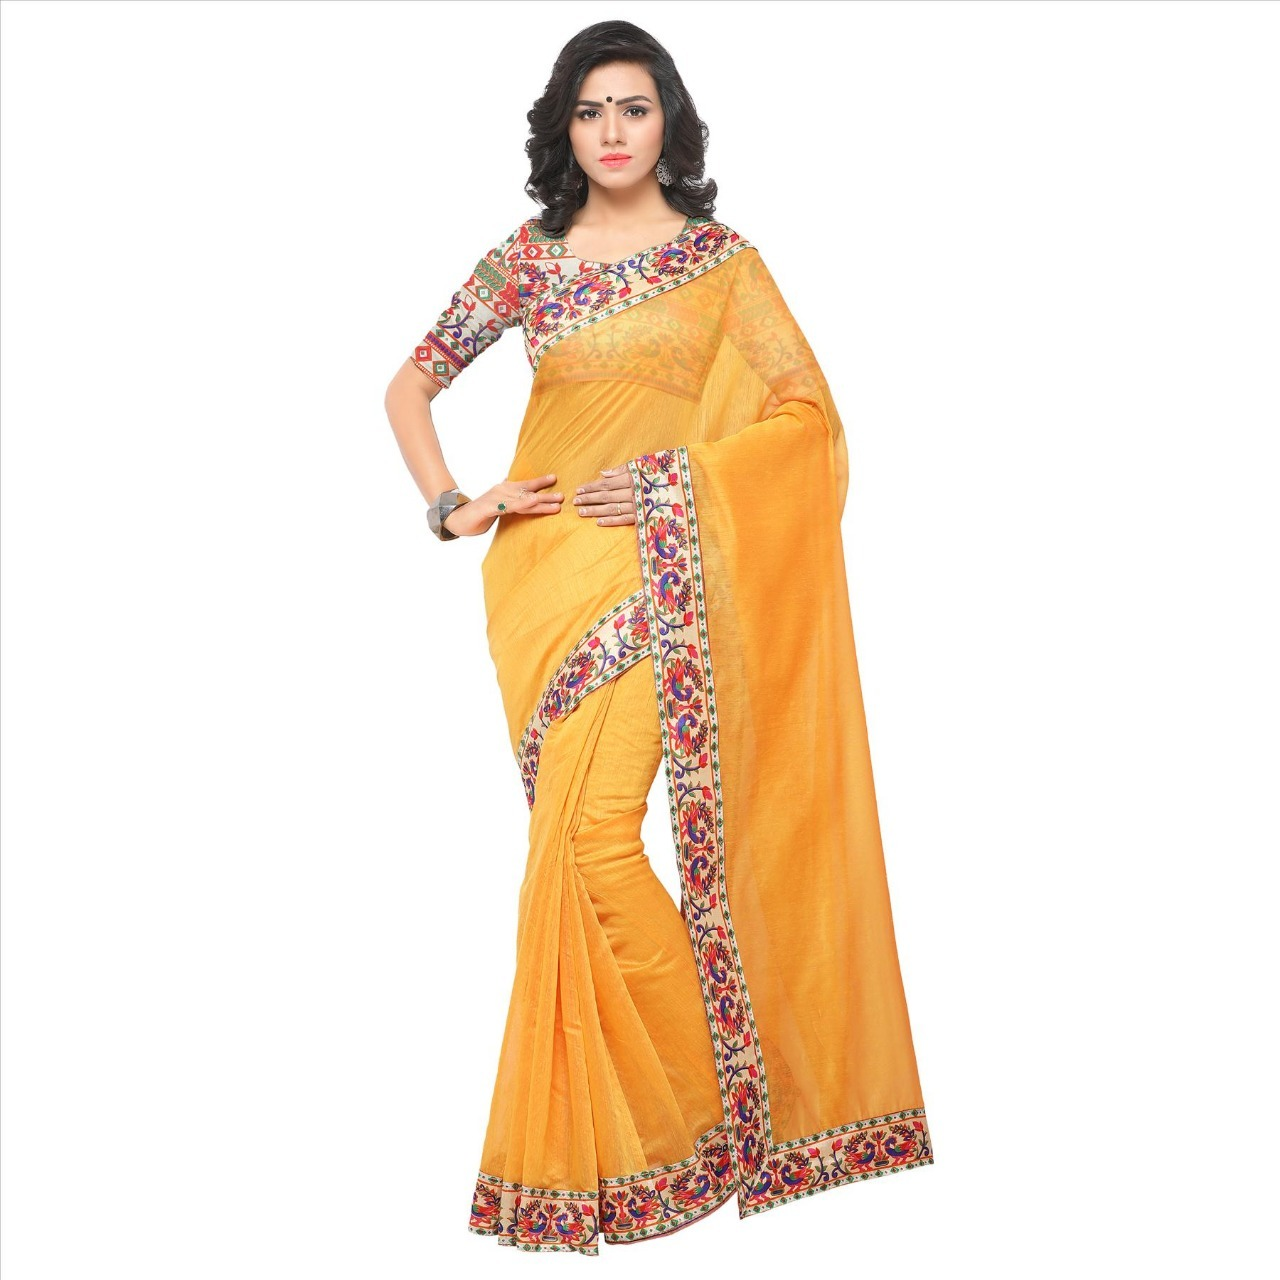 New designer chanderi saree with lace